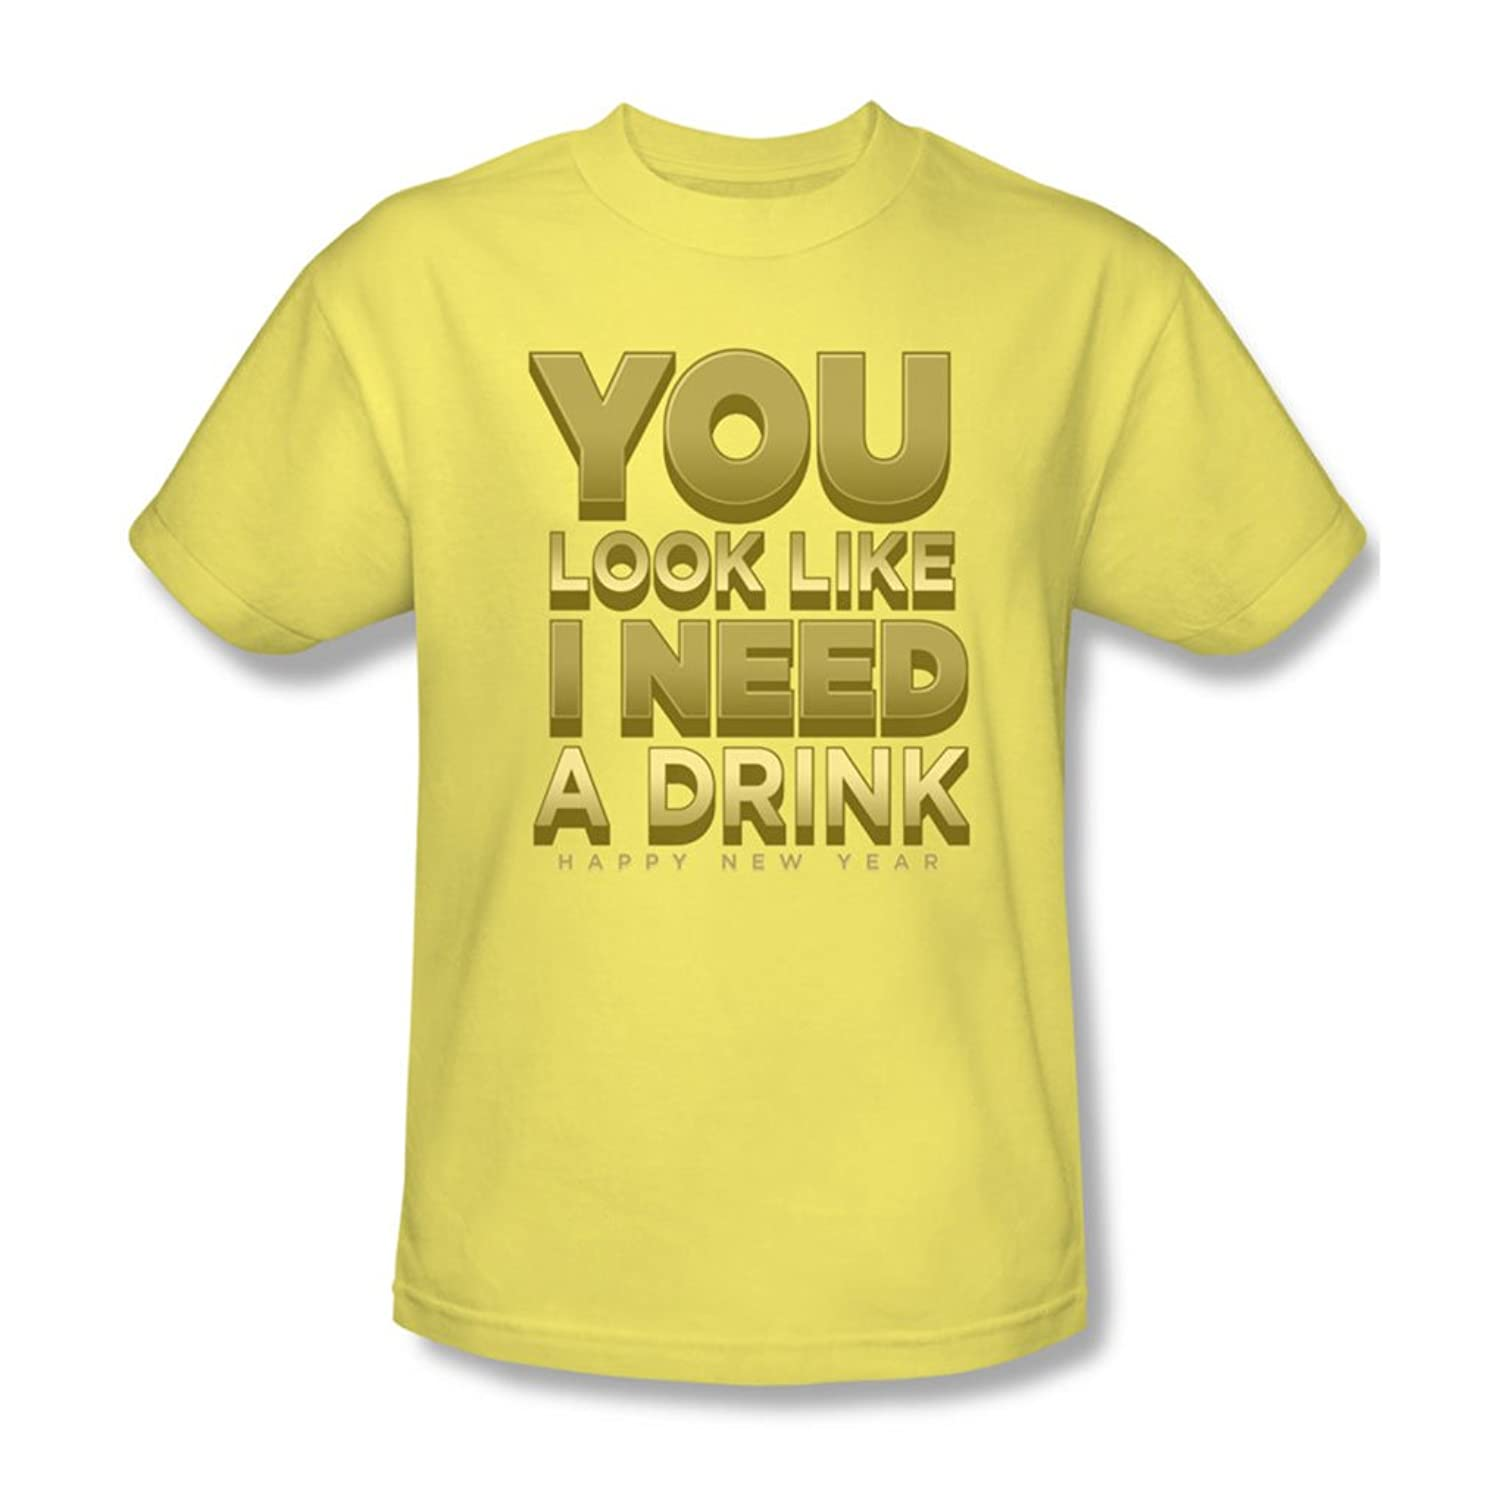 Funny Tees - Mens I Need A Drink T-Shirt